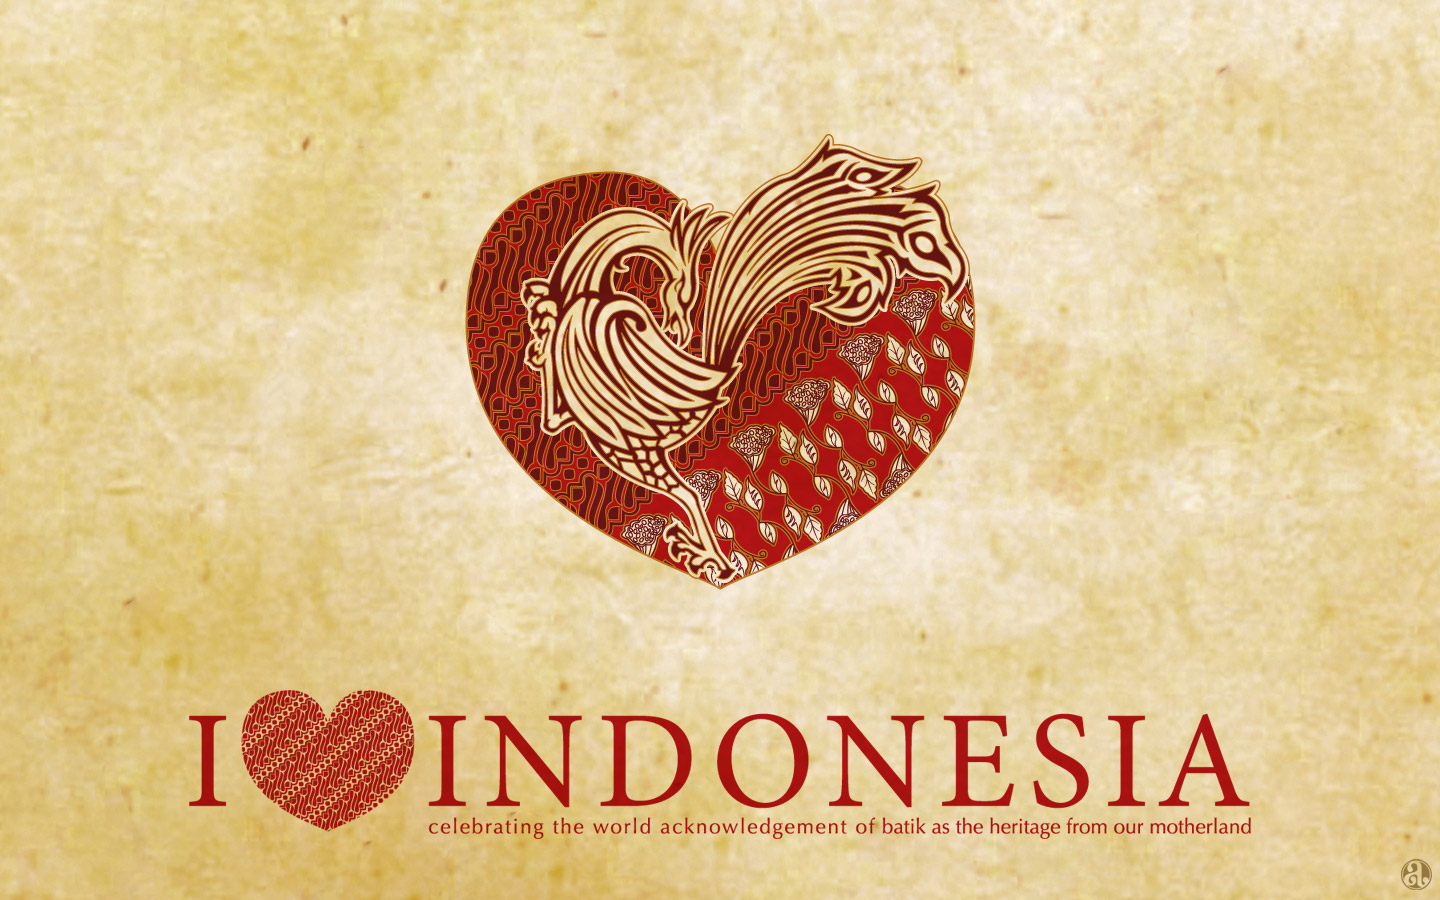 http://2.bp.blogspot.com/-4TsgumipSeI/TpzzA1Ec6rI/AAAAAAAABH4/m6_GxceVxwU/s1600/i-love-indonesia-wallpapers.jpg